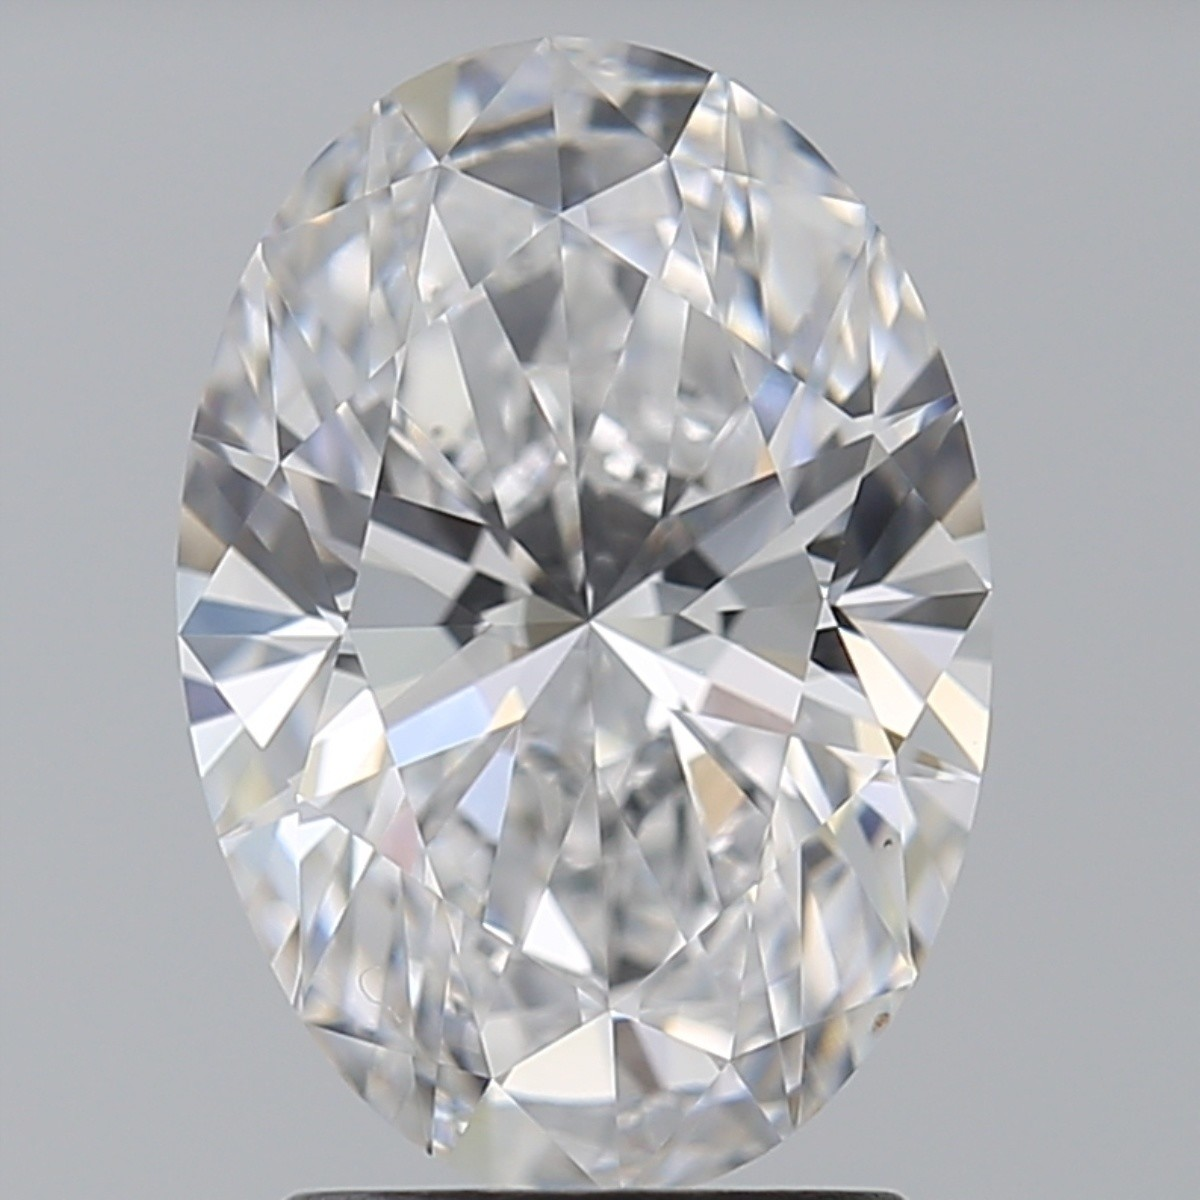 2.10 Carat Oval Diamond (D/VS1)